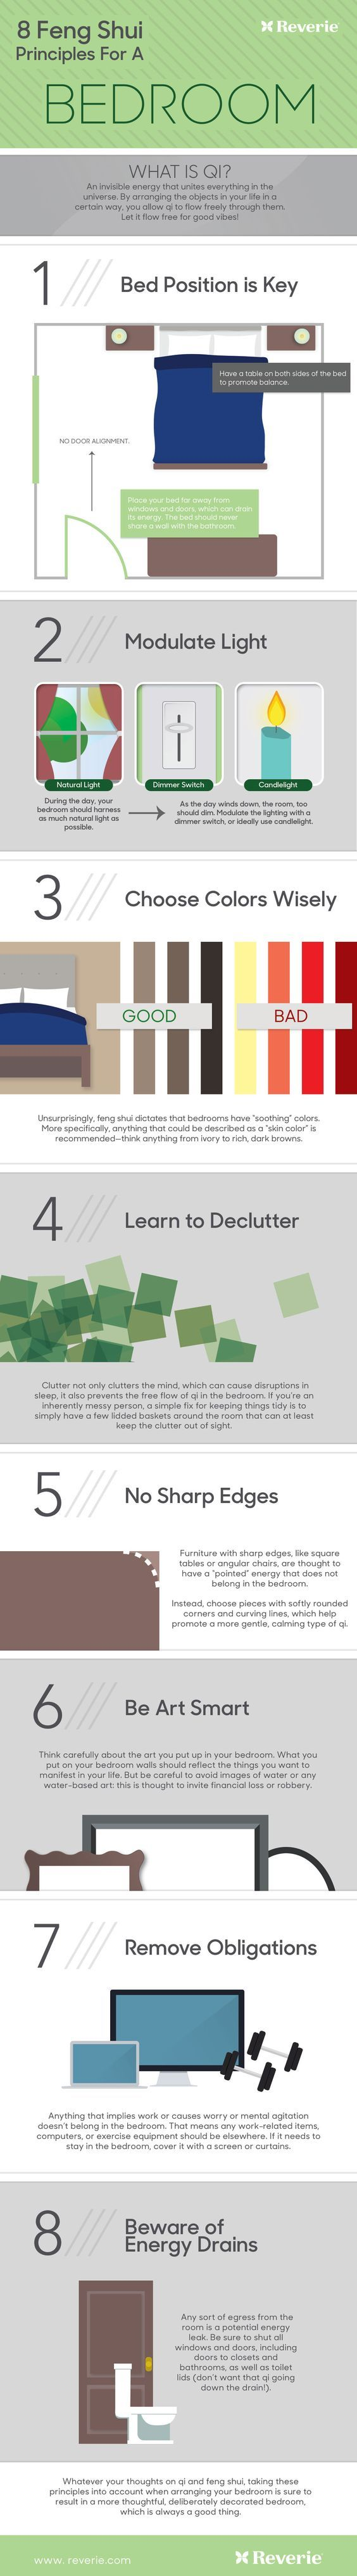 In the bedroom, where you harness the life-renewing force of sleep, Qi becomes perhaps more important than anywhere else. Make sure your bedroom is set up to be a peaceful, restorative, and lucky space by following the Feng Shui principles, compiled into an infographic by Reverie.